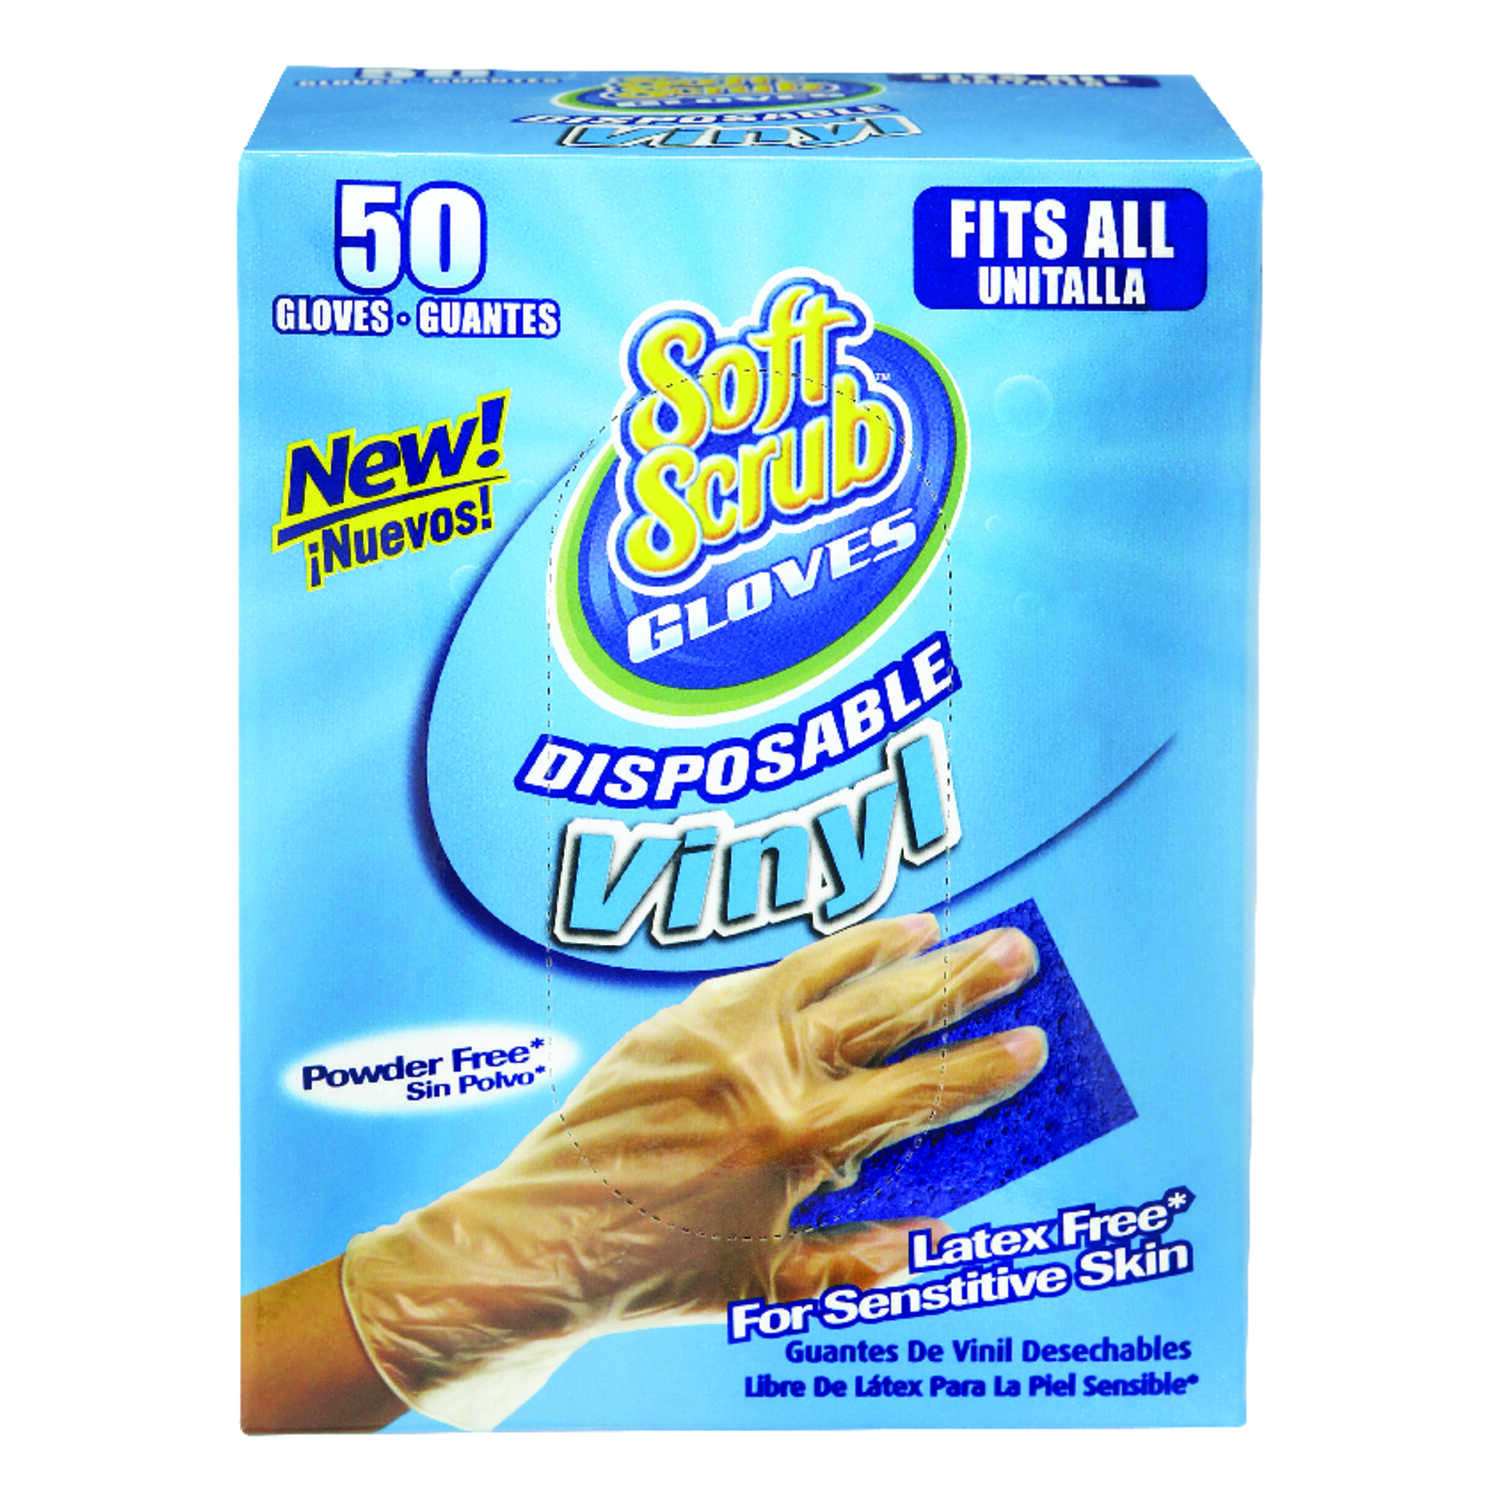 Soft Scrub  Vinyl  Disposable Gloves  One Size Fits All  Clear  50 pk